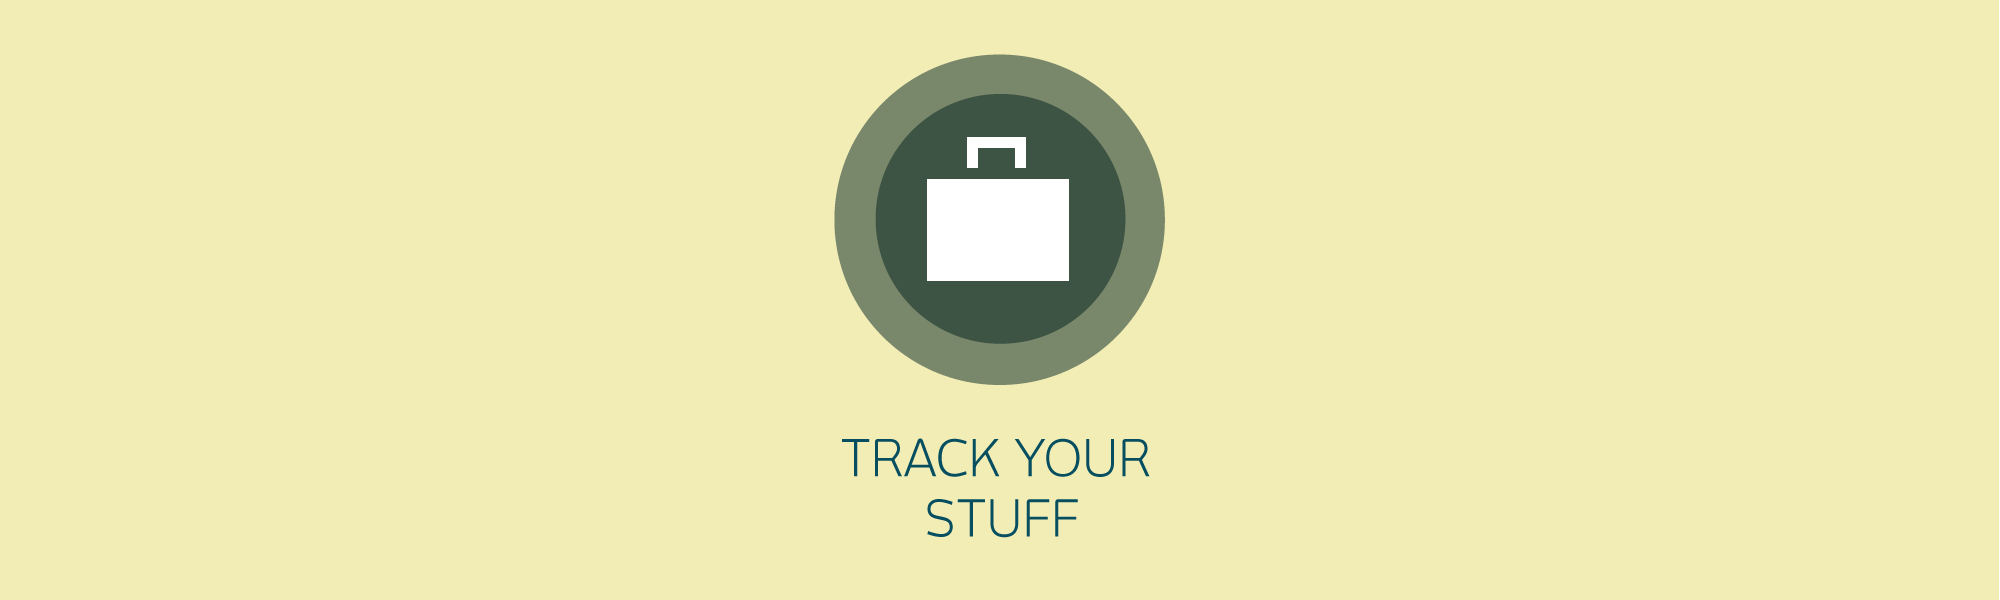 Track Your Stuff